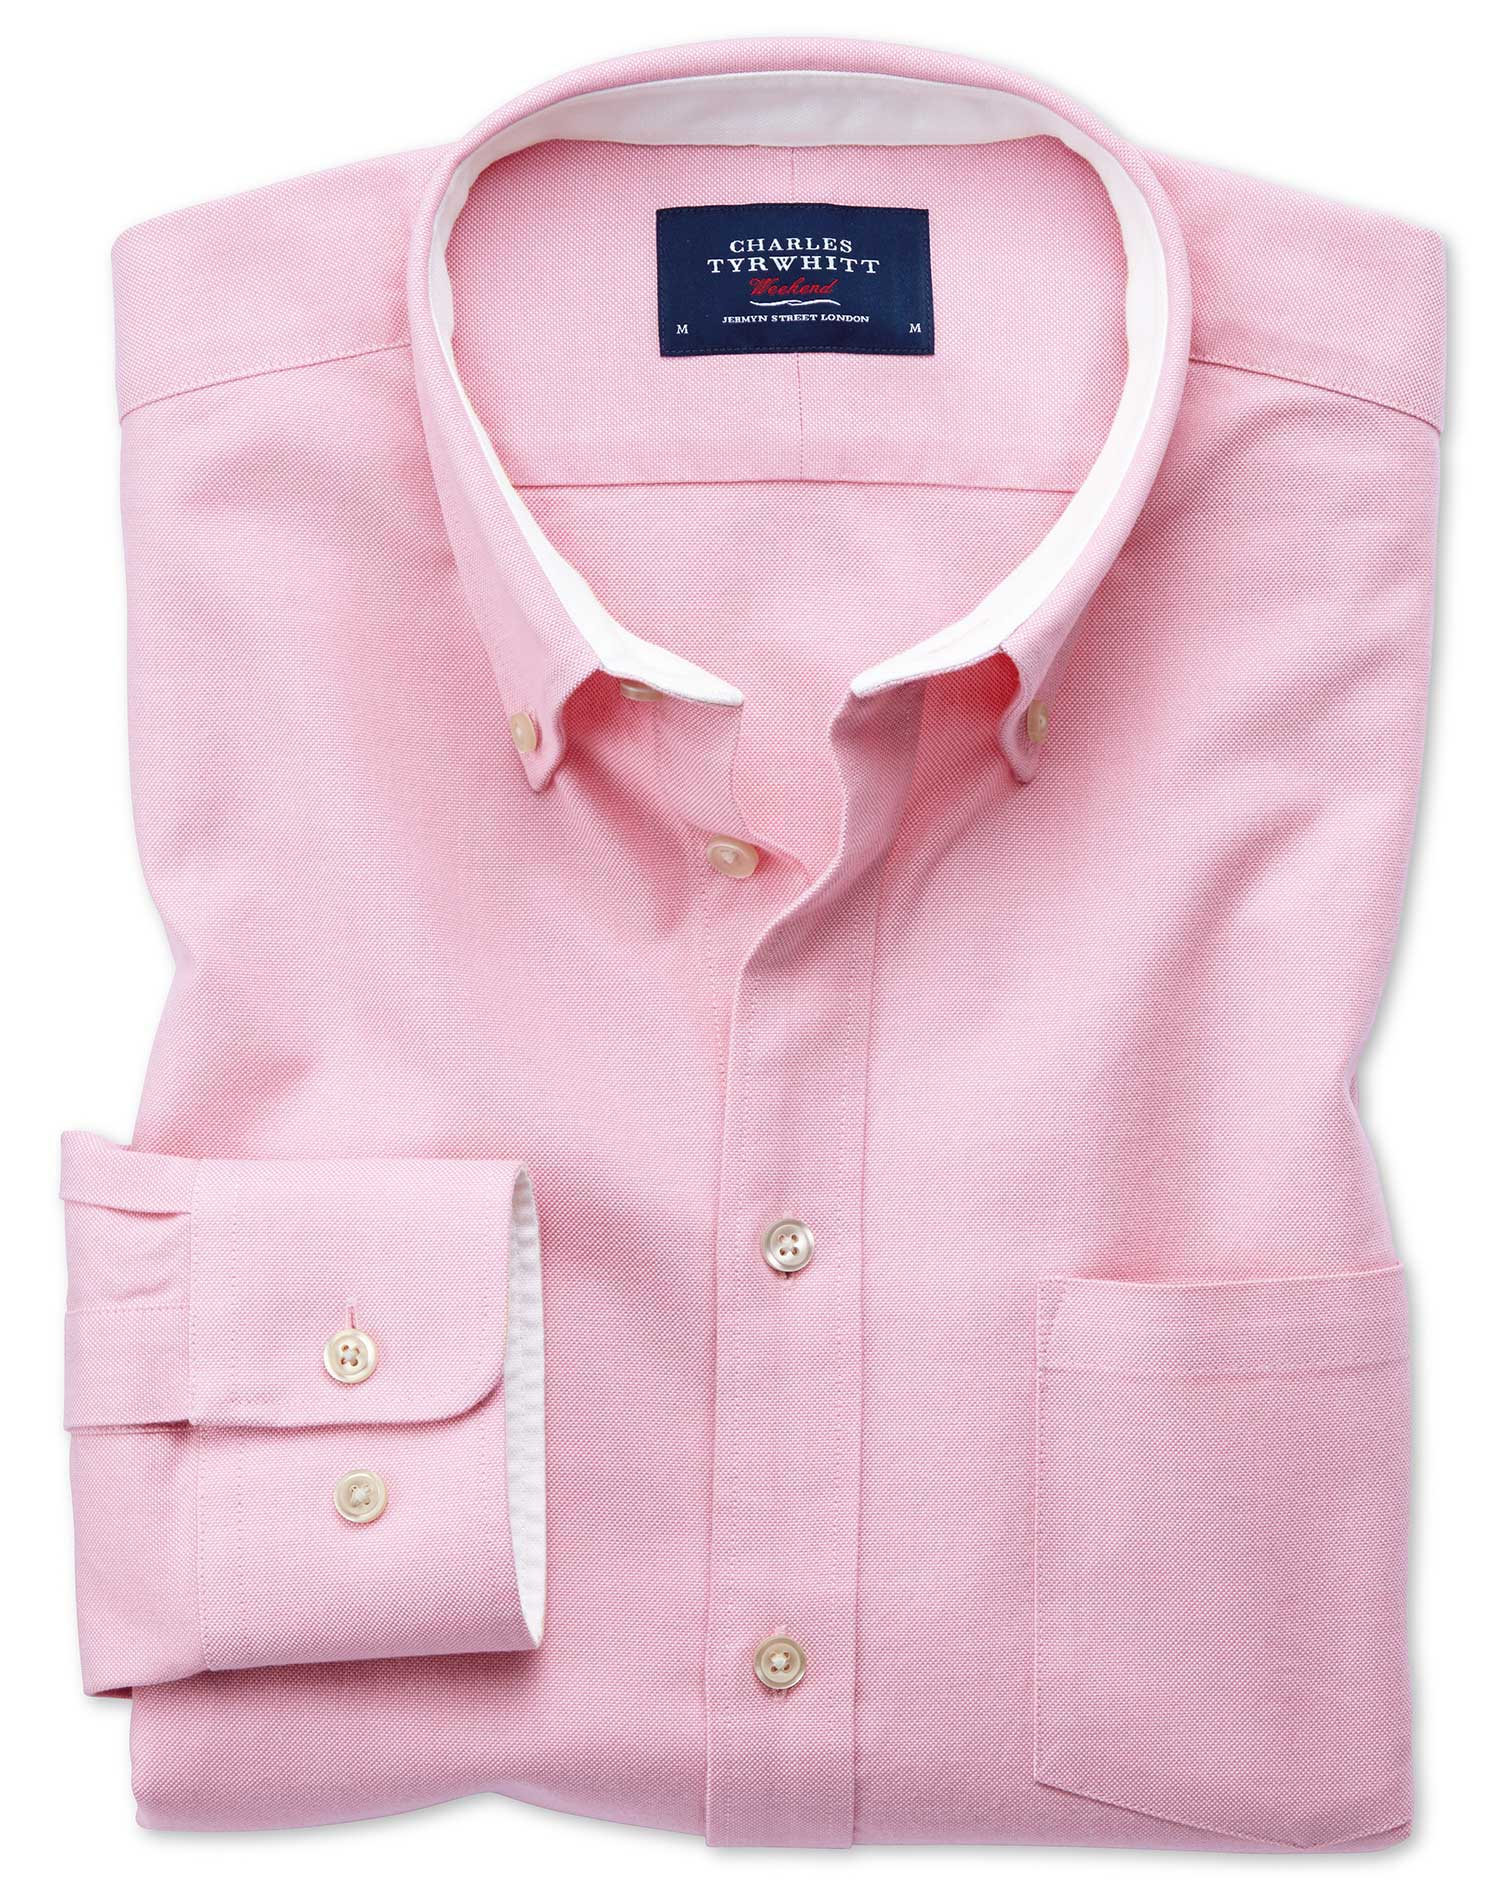 Extra Slim Fit Button-Down Washed Oxford Plain Light Pink Cotton Shirt Single Cuff Size XXL by Charl